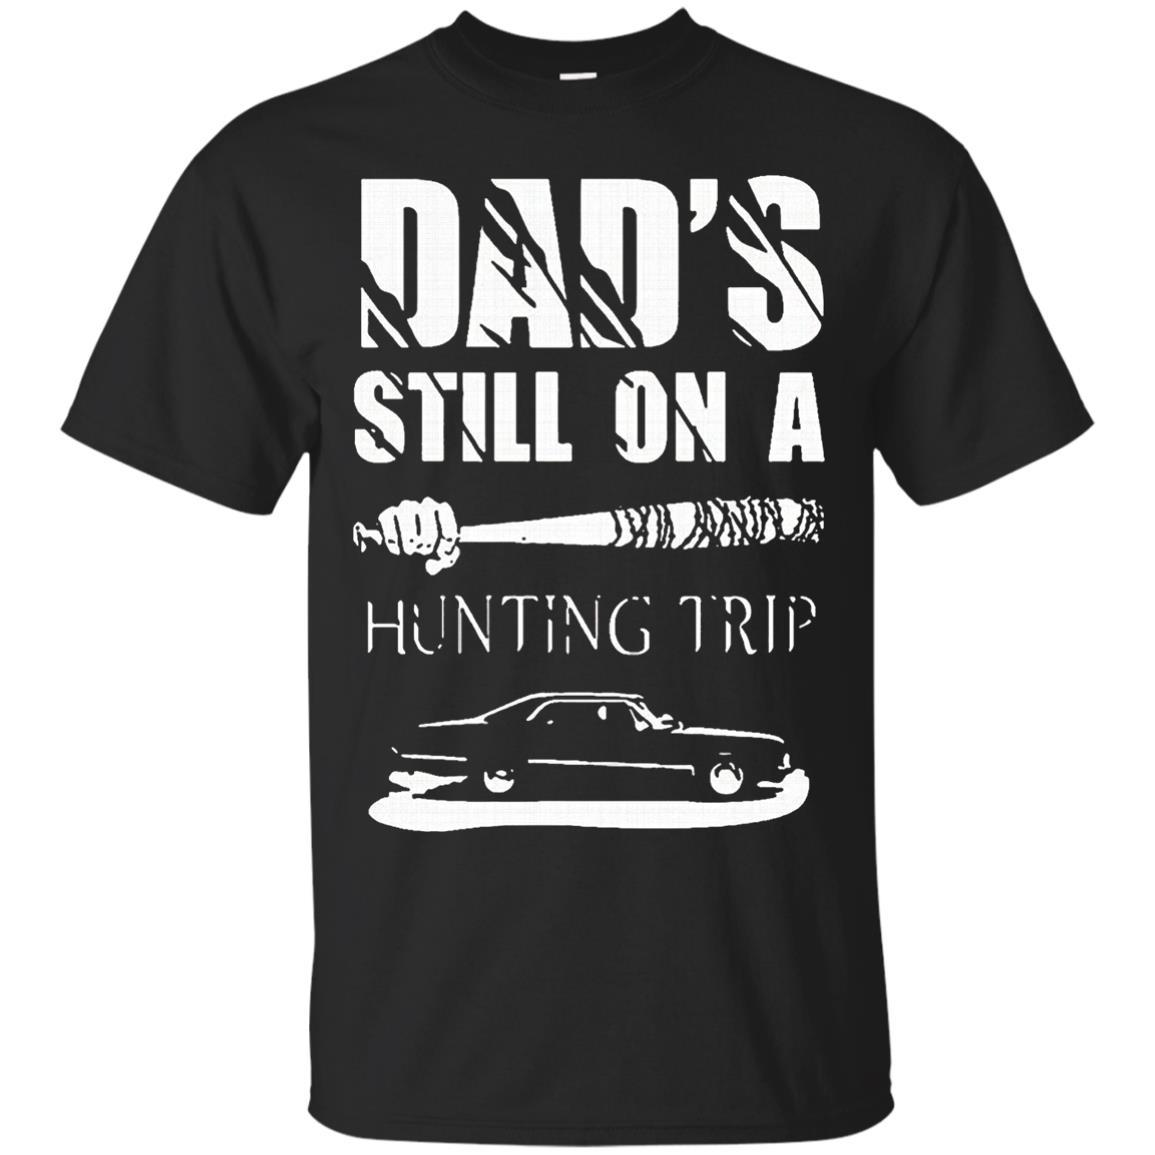 DADS STILL ON HUNTING TRIP T-Shirt